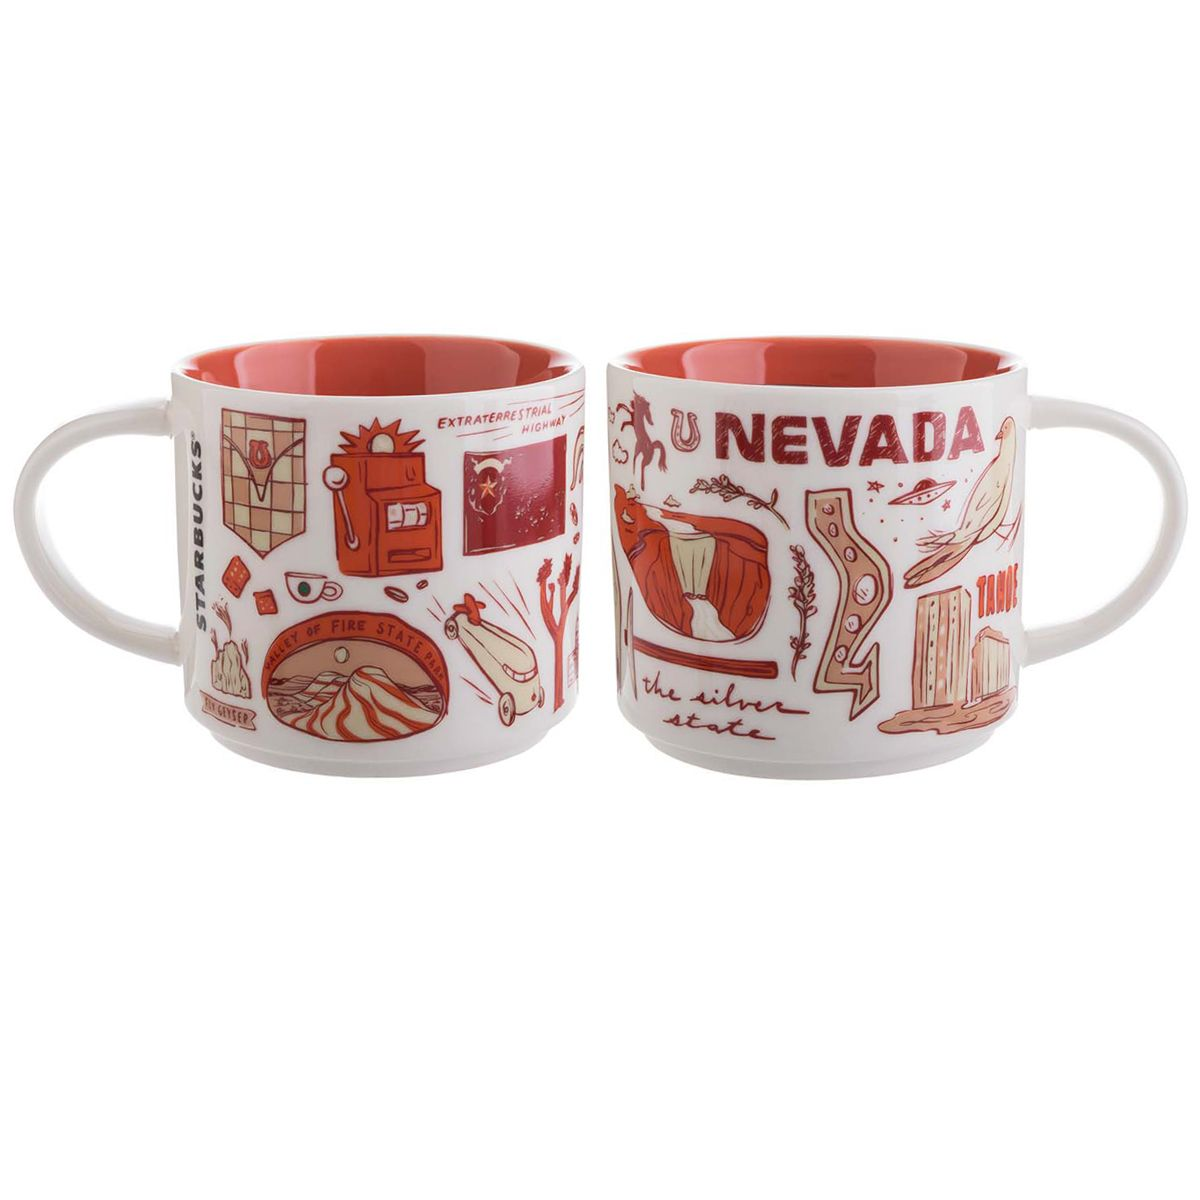 Nevada — A collectible mug from the Starbucks Been There